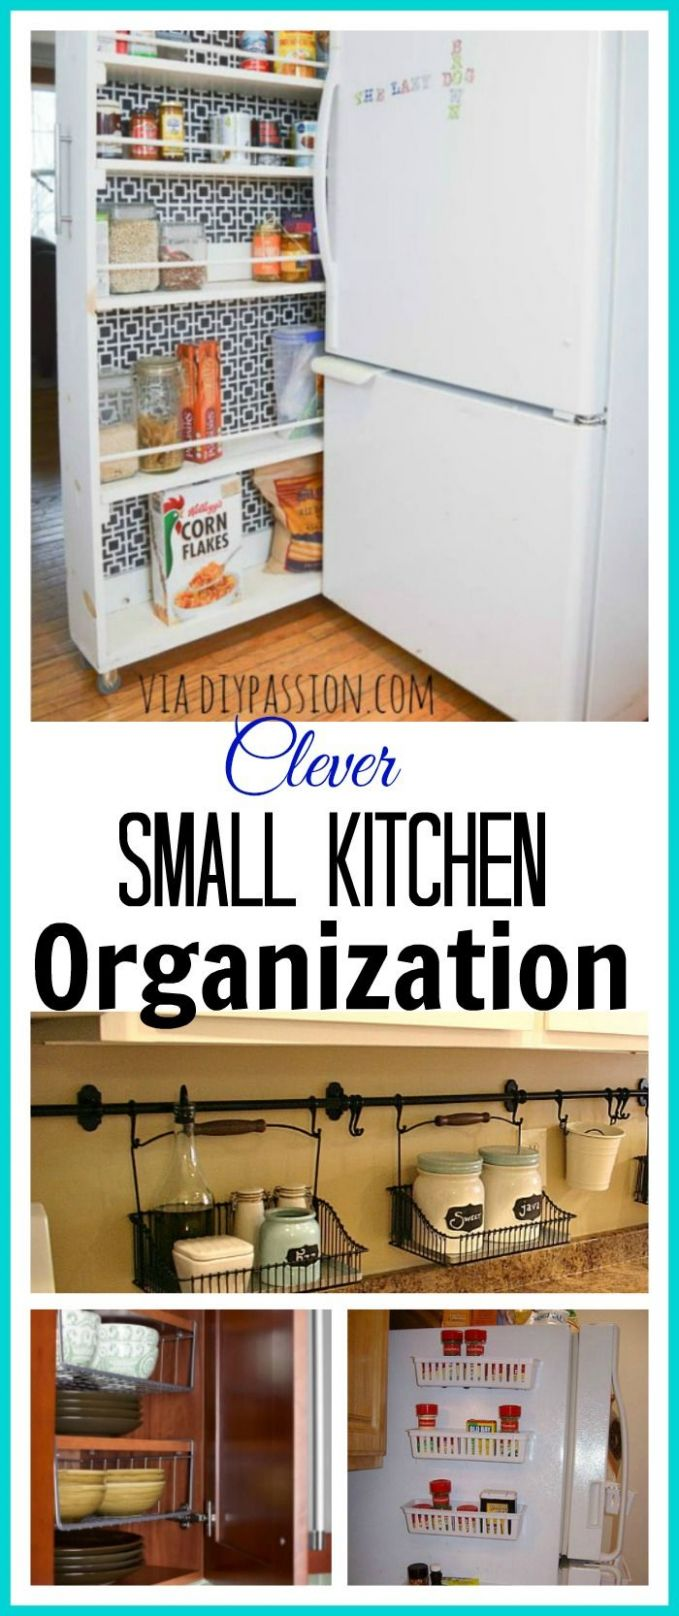 12 Ideas For Organizing a Small Kitchen | Kitchen organization diy - kitchen ideas organizing